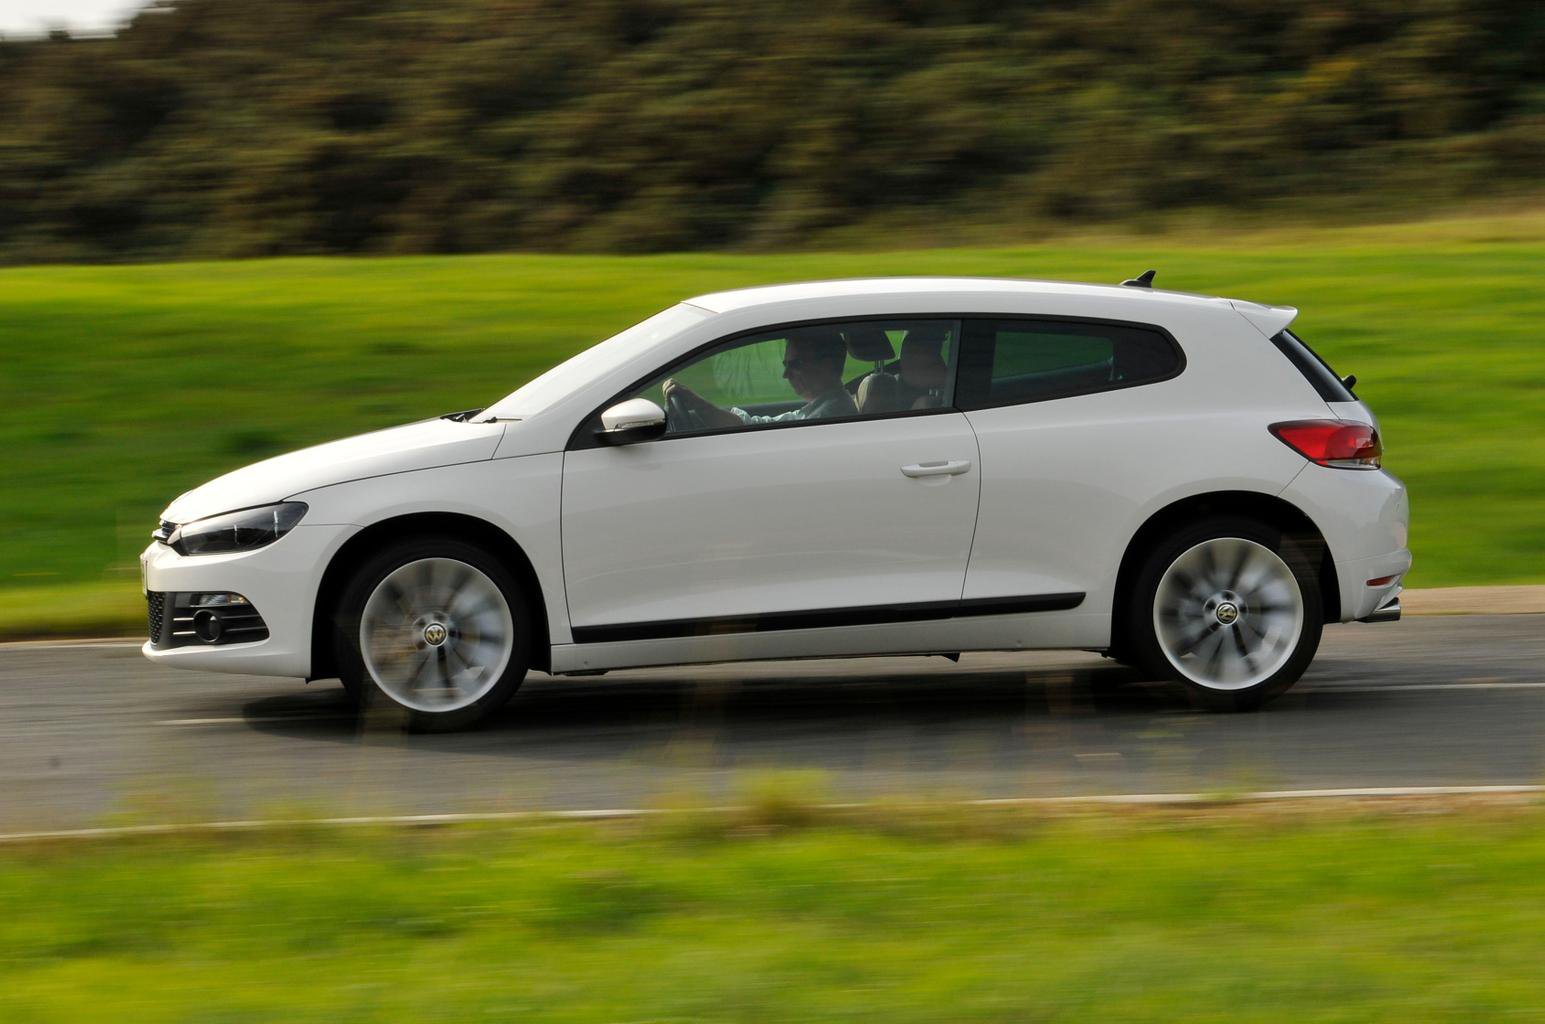 Used VW Scirocco vs Mini Coupe vs Peugeot RCZ